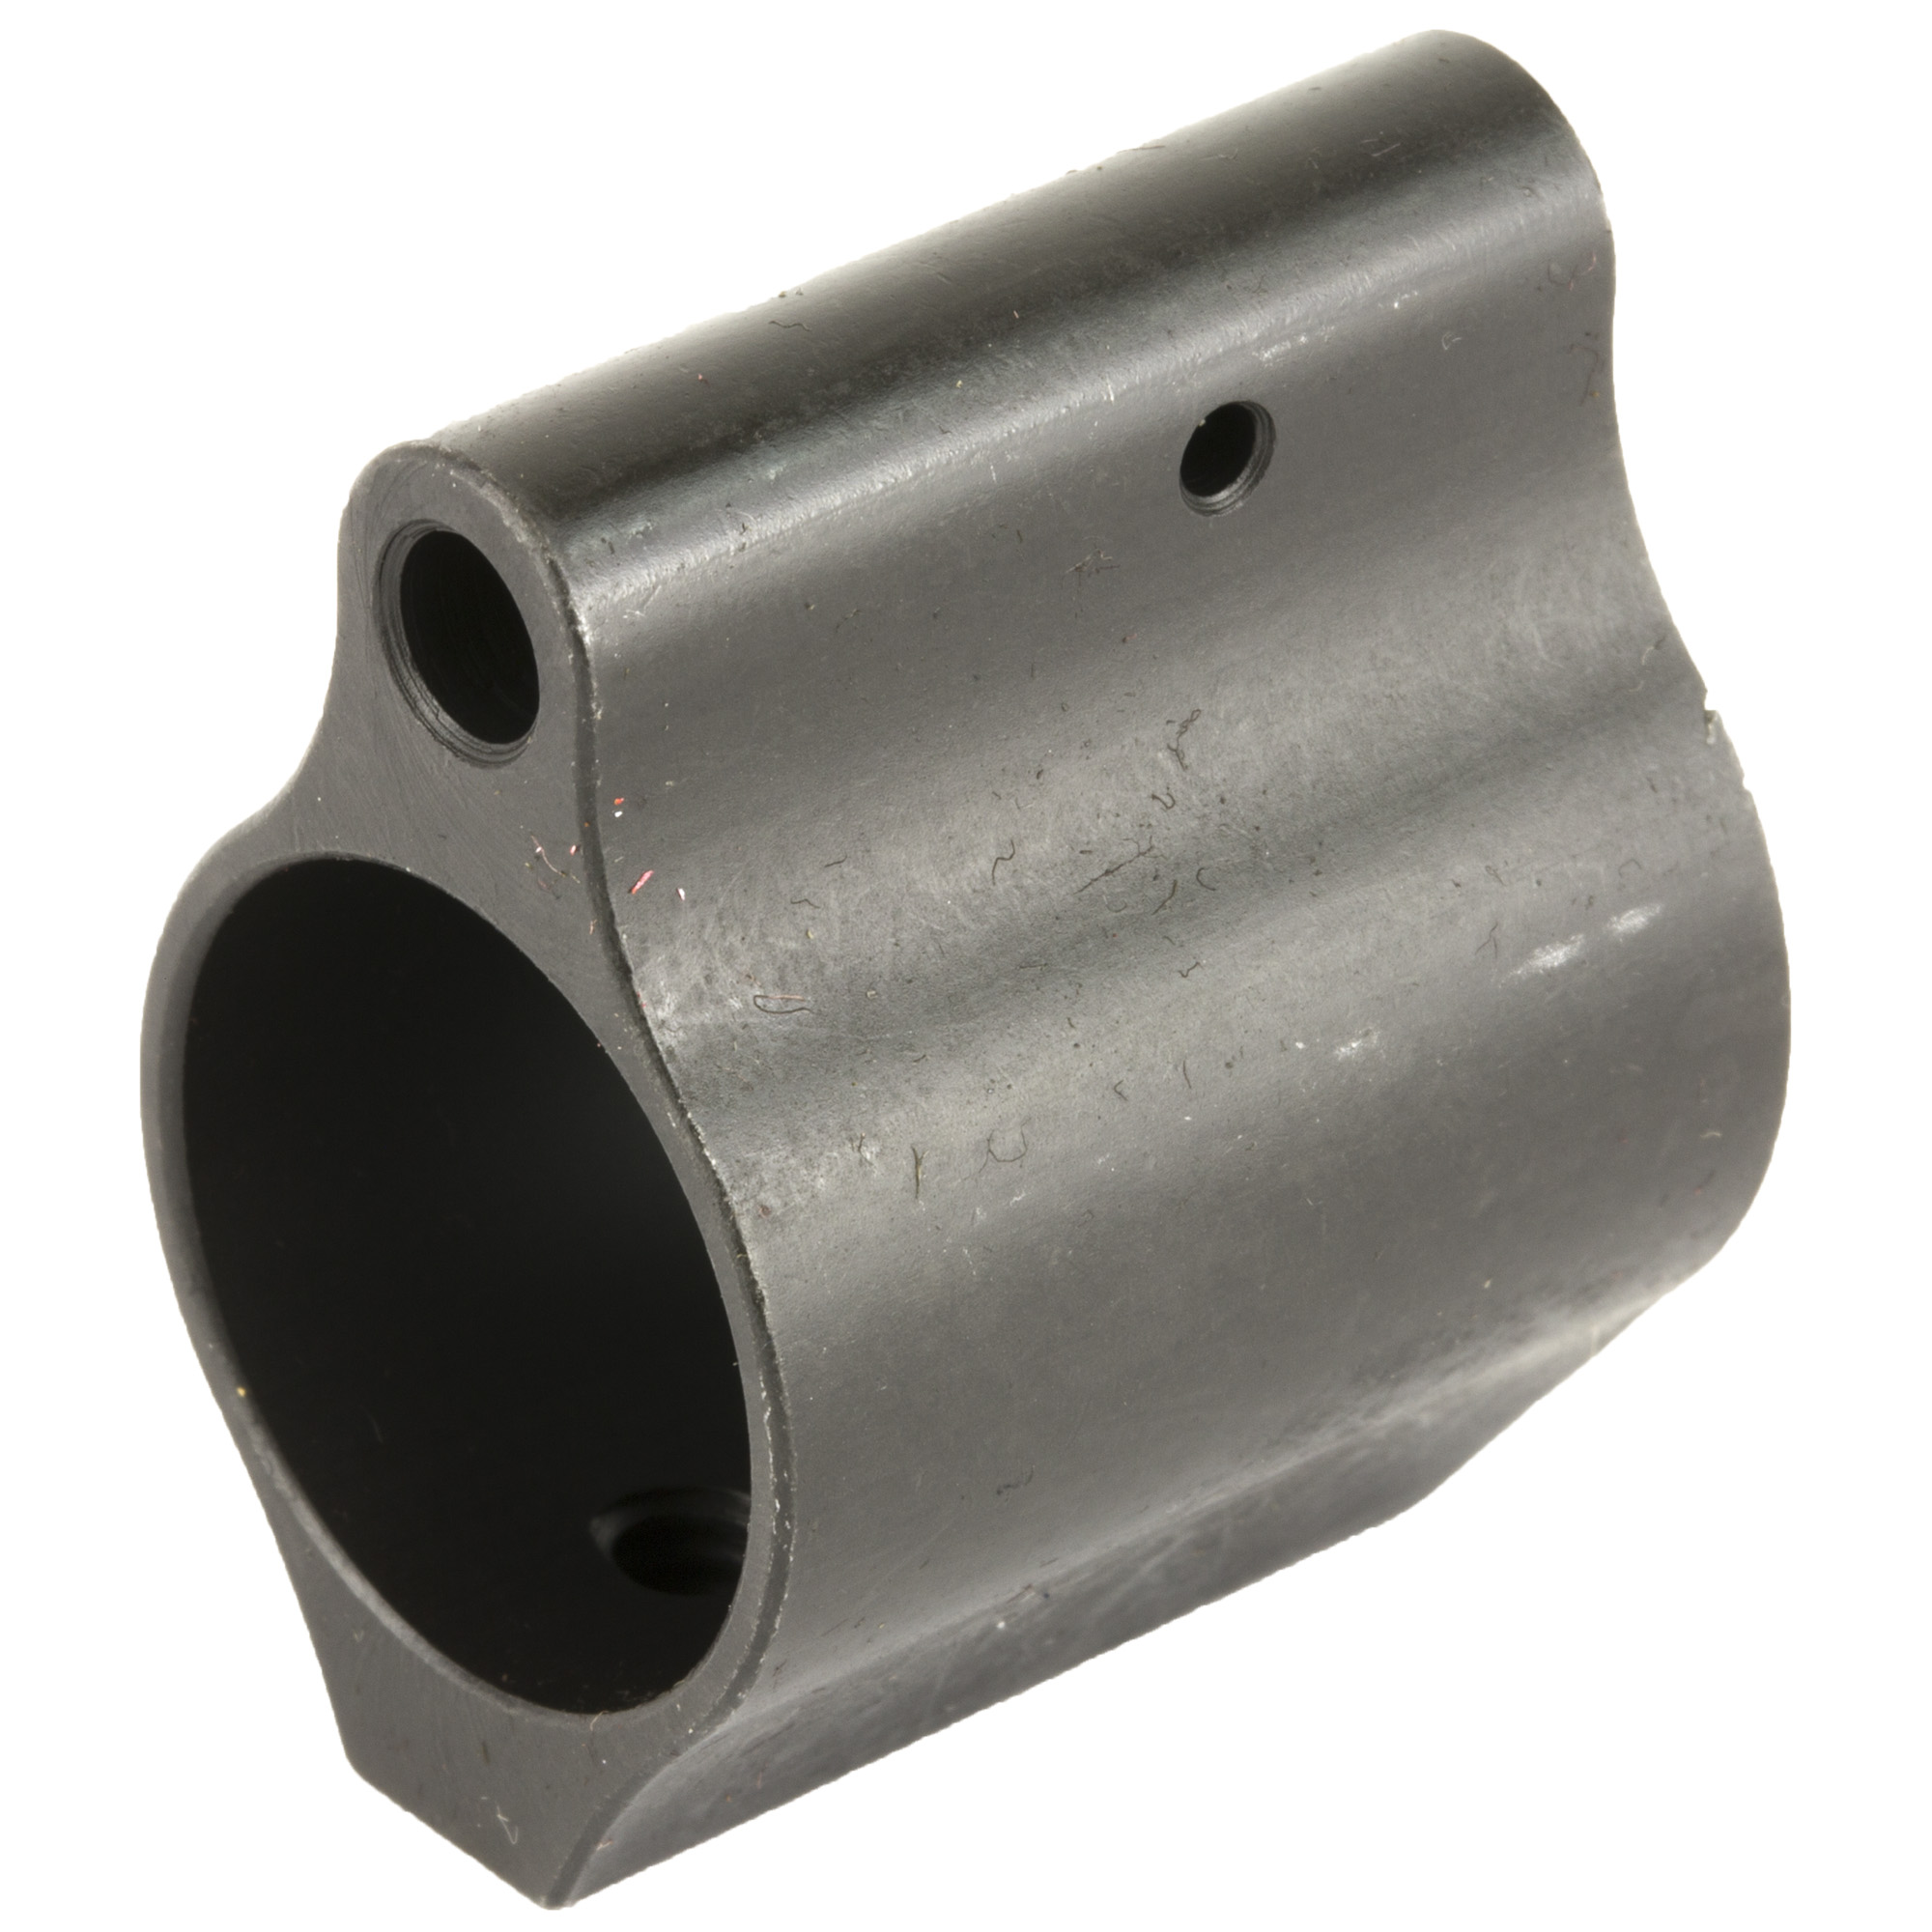 The Midwest Industries micro gas block will fit under most commercially available hand guards.